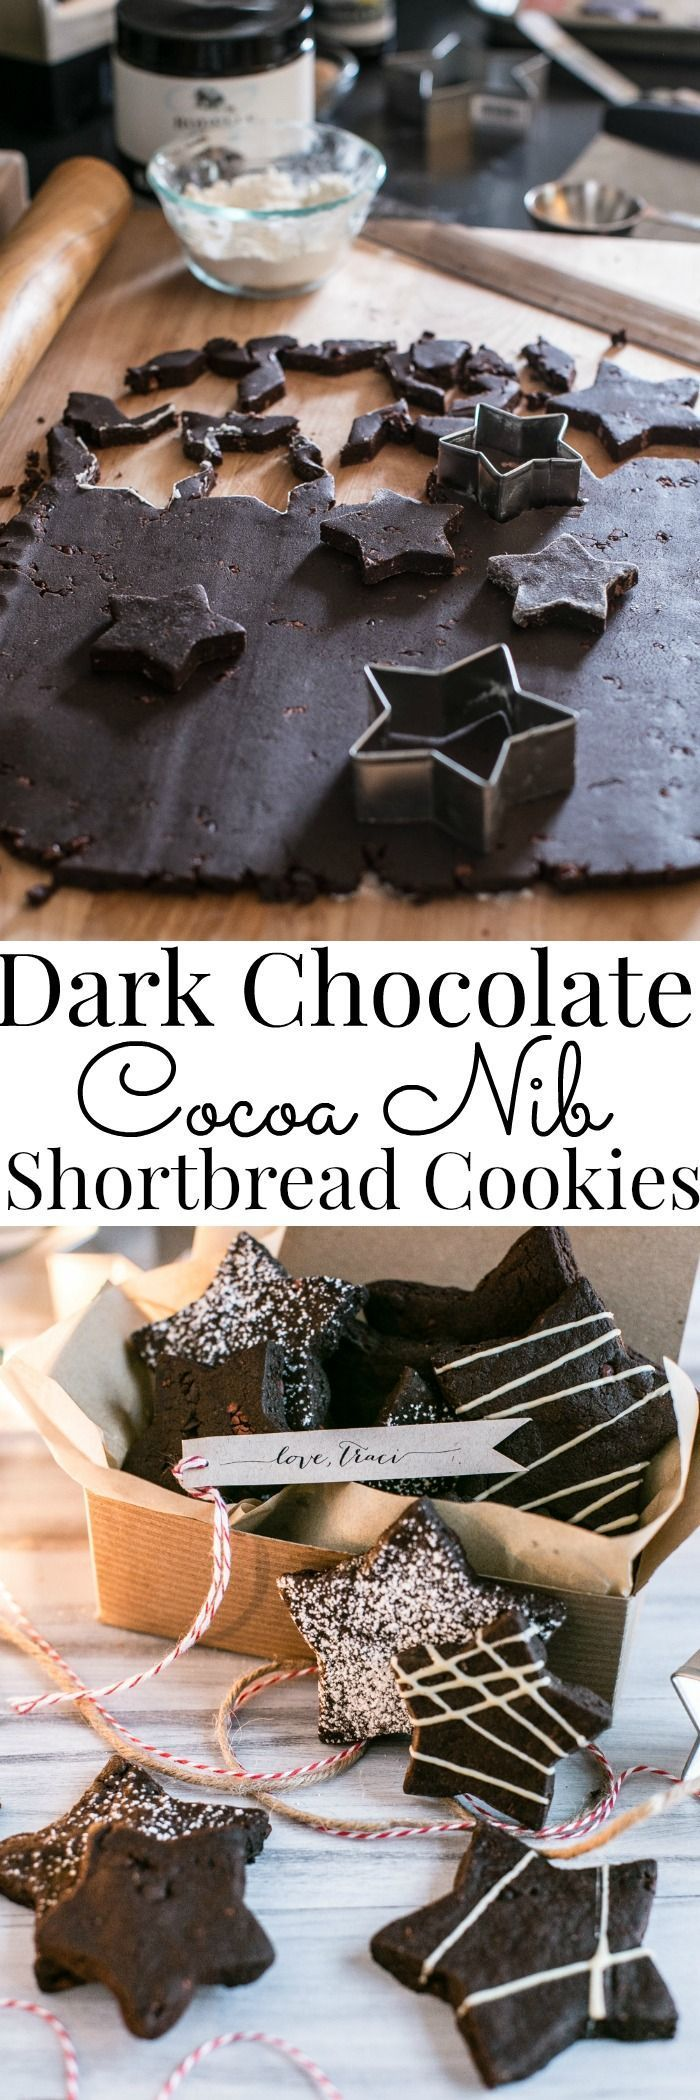 #Dark #Chocolate #Cocoa #Nib #Shortbread #Cookies #scratch #food #nom #yum #confectionary #dessert #dastardlydesserts #sweetsforthesweet